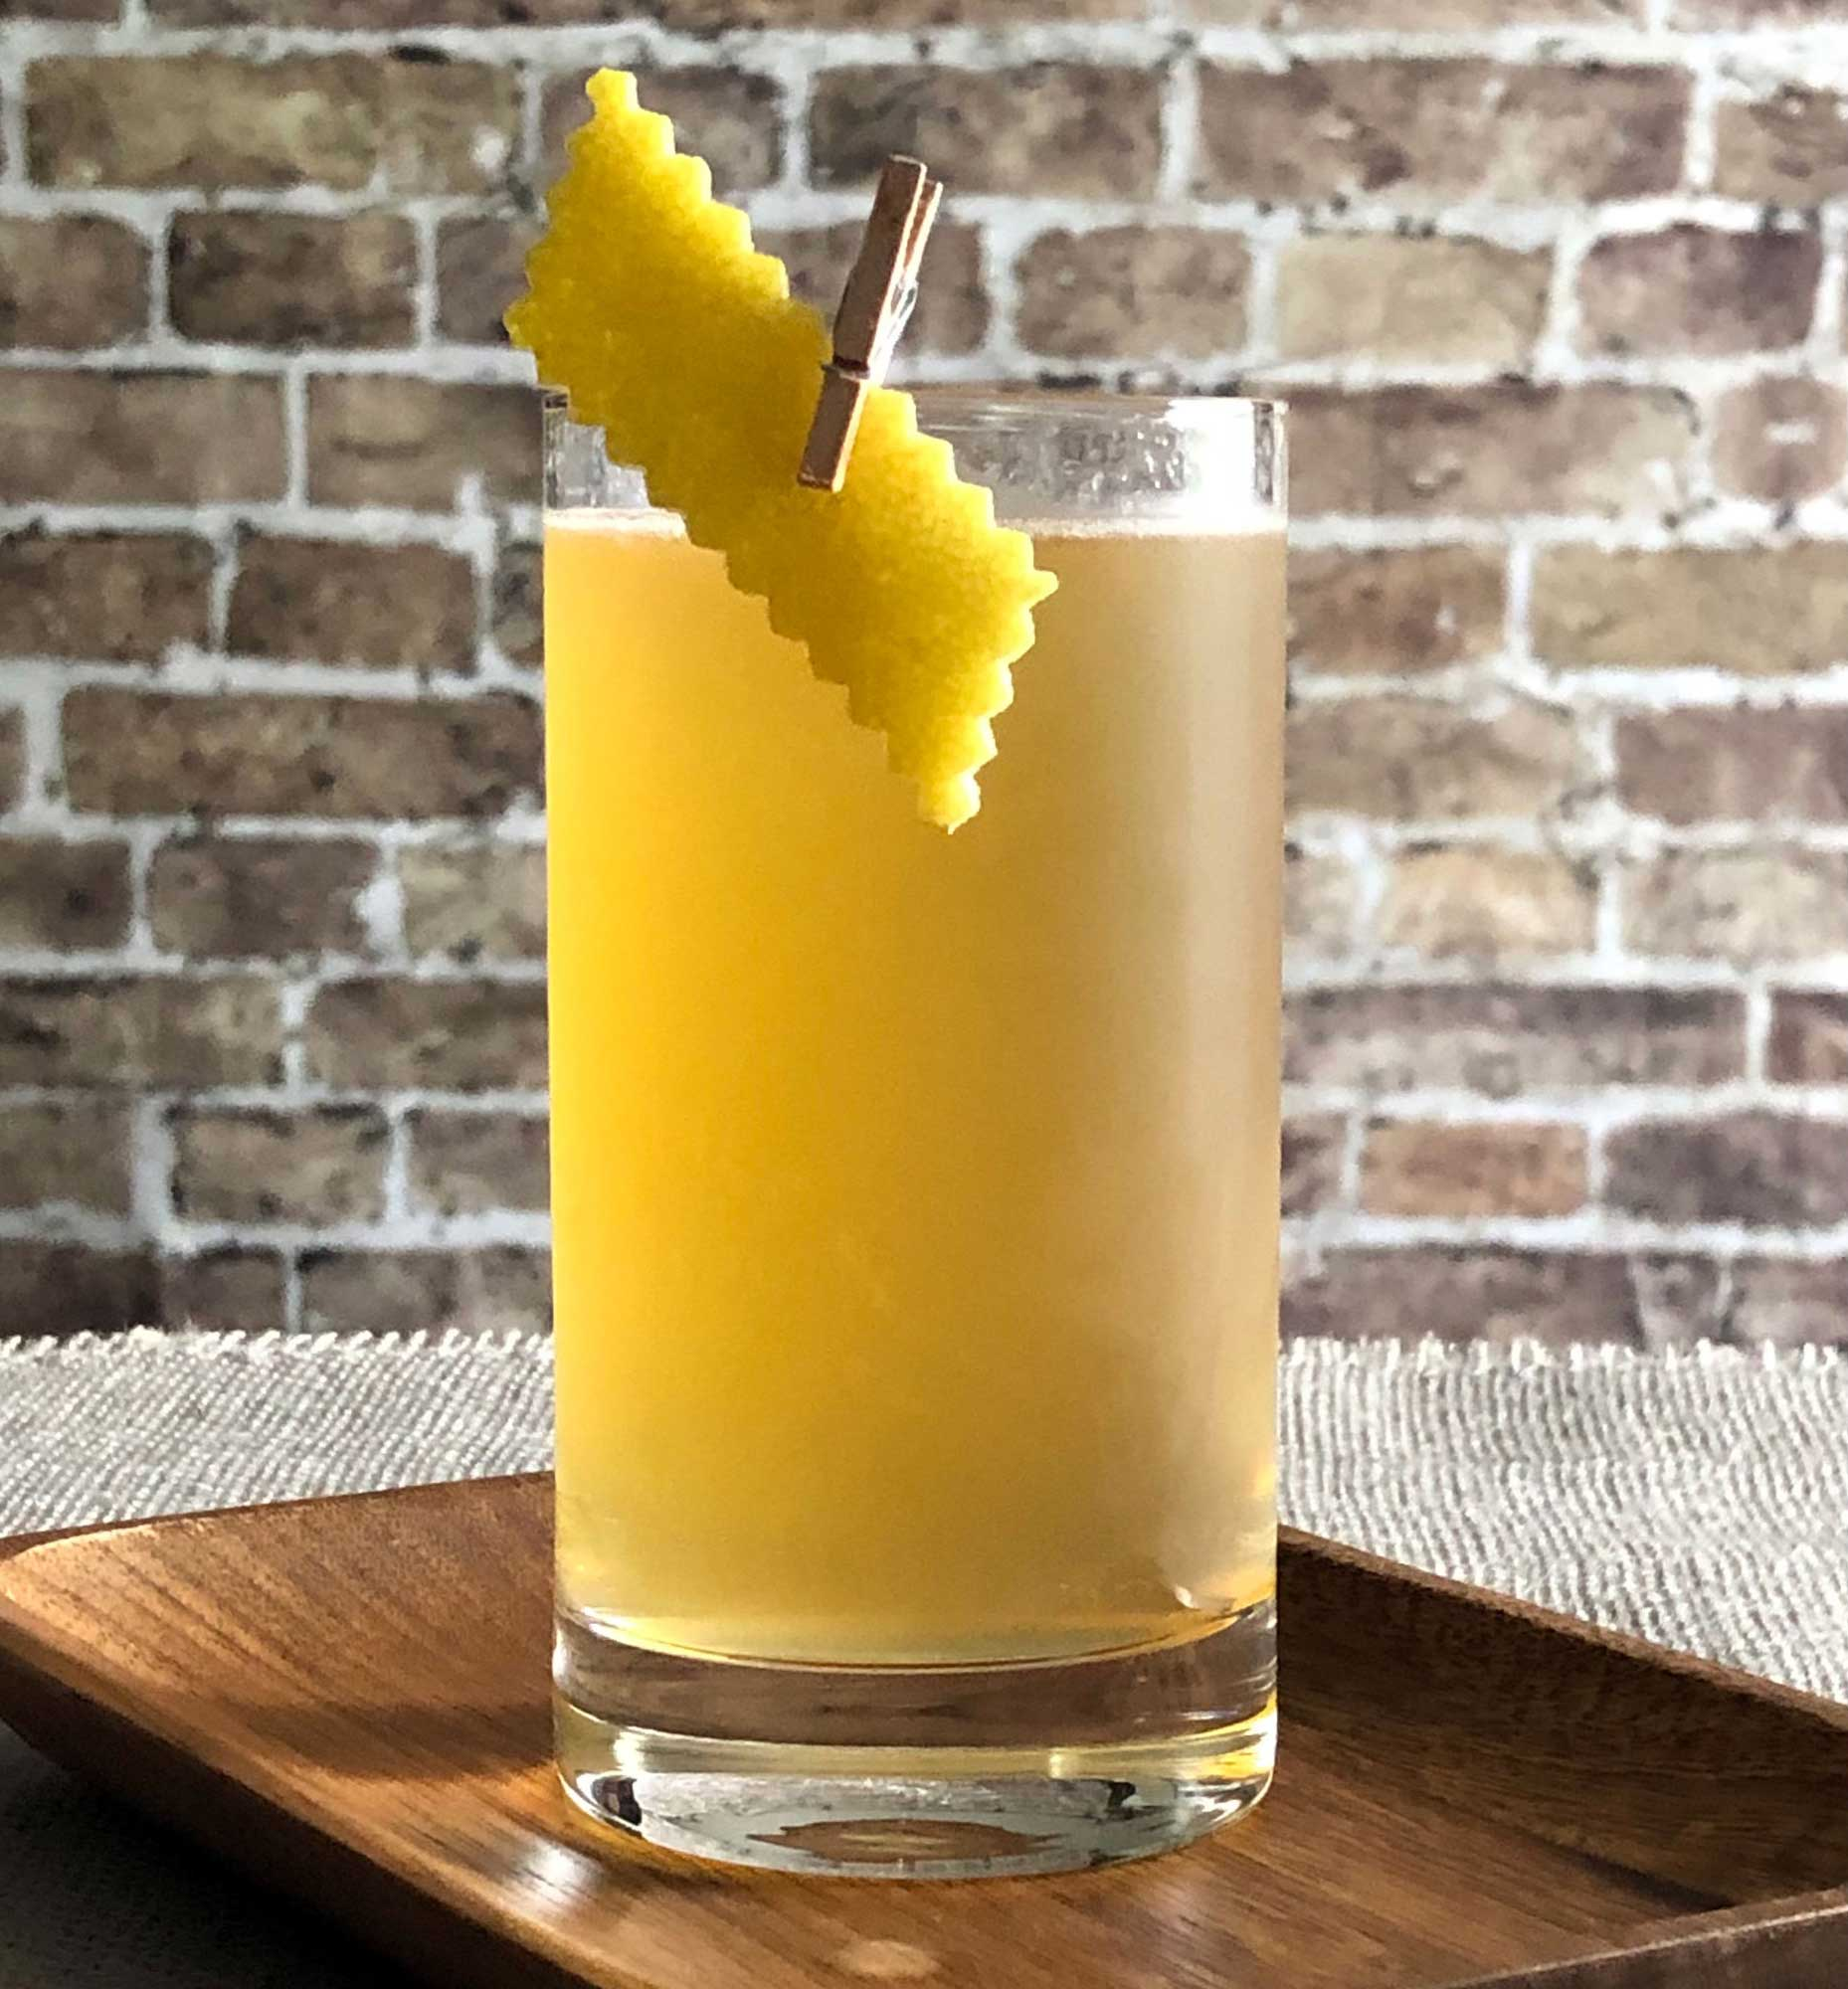 An example of the Apricot Beer Collins, the mixed drink (collins) featuring white beer, Hayman's Old Tom Gin, Rothman & Winter Orchard Apricot Liqueur, and lemon juice; photo by Lee Edwards